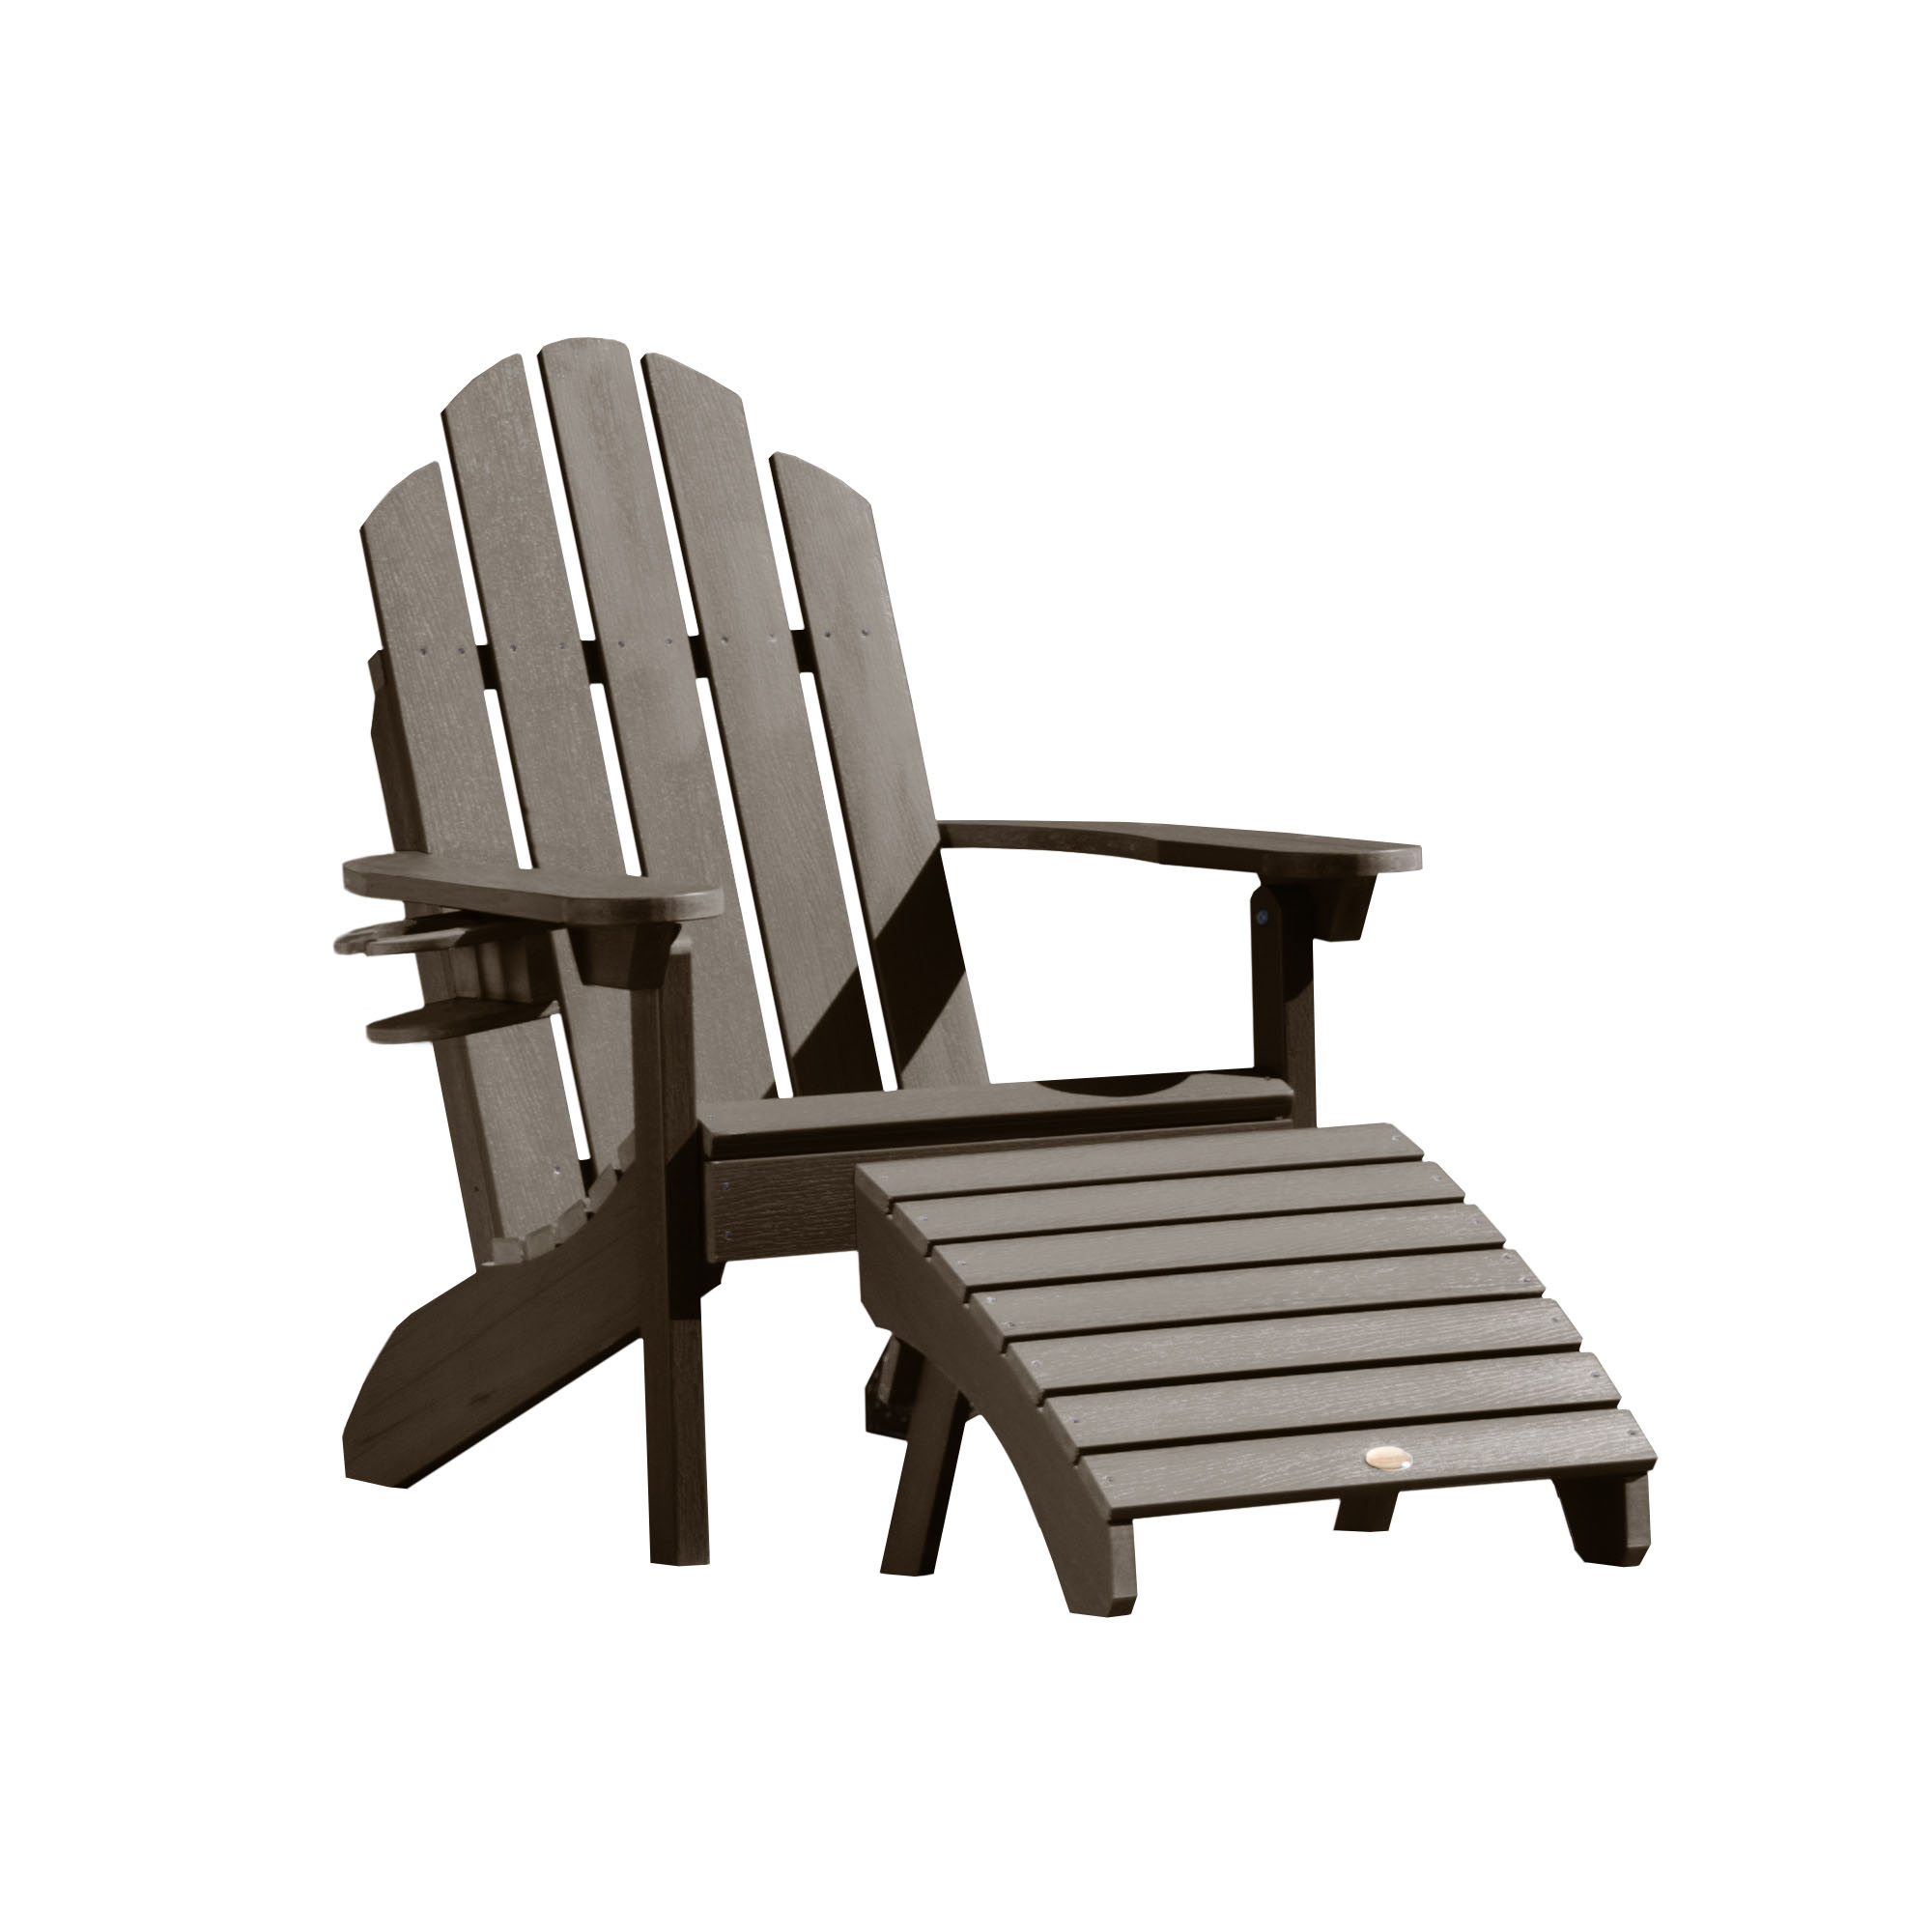 adirondack chairs walmart christmas chair covers b and m highwood 1 classic westport cup holder